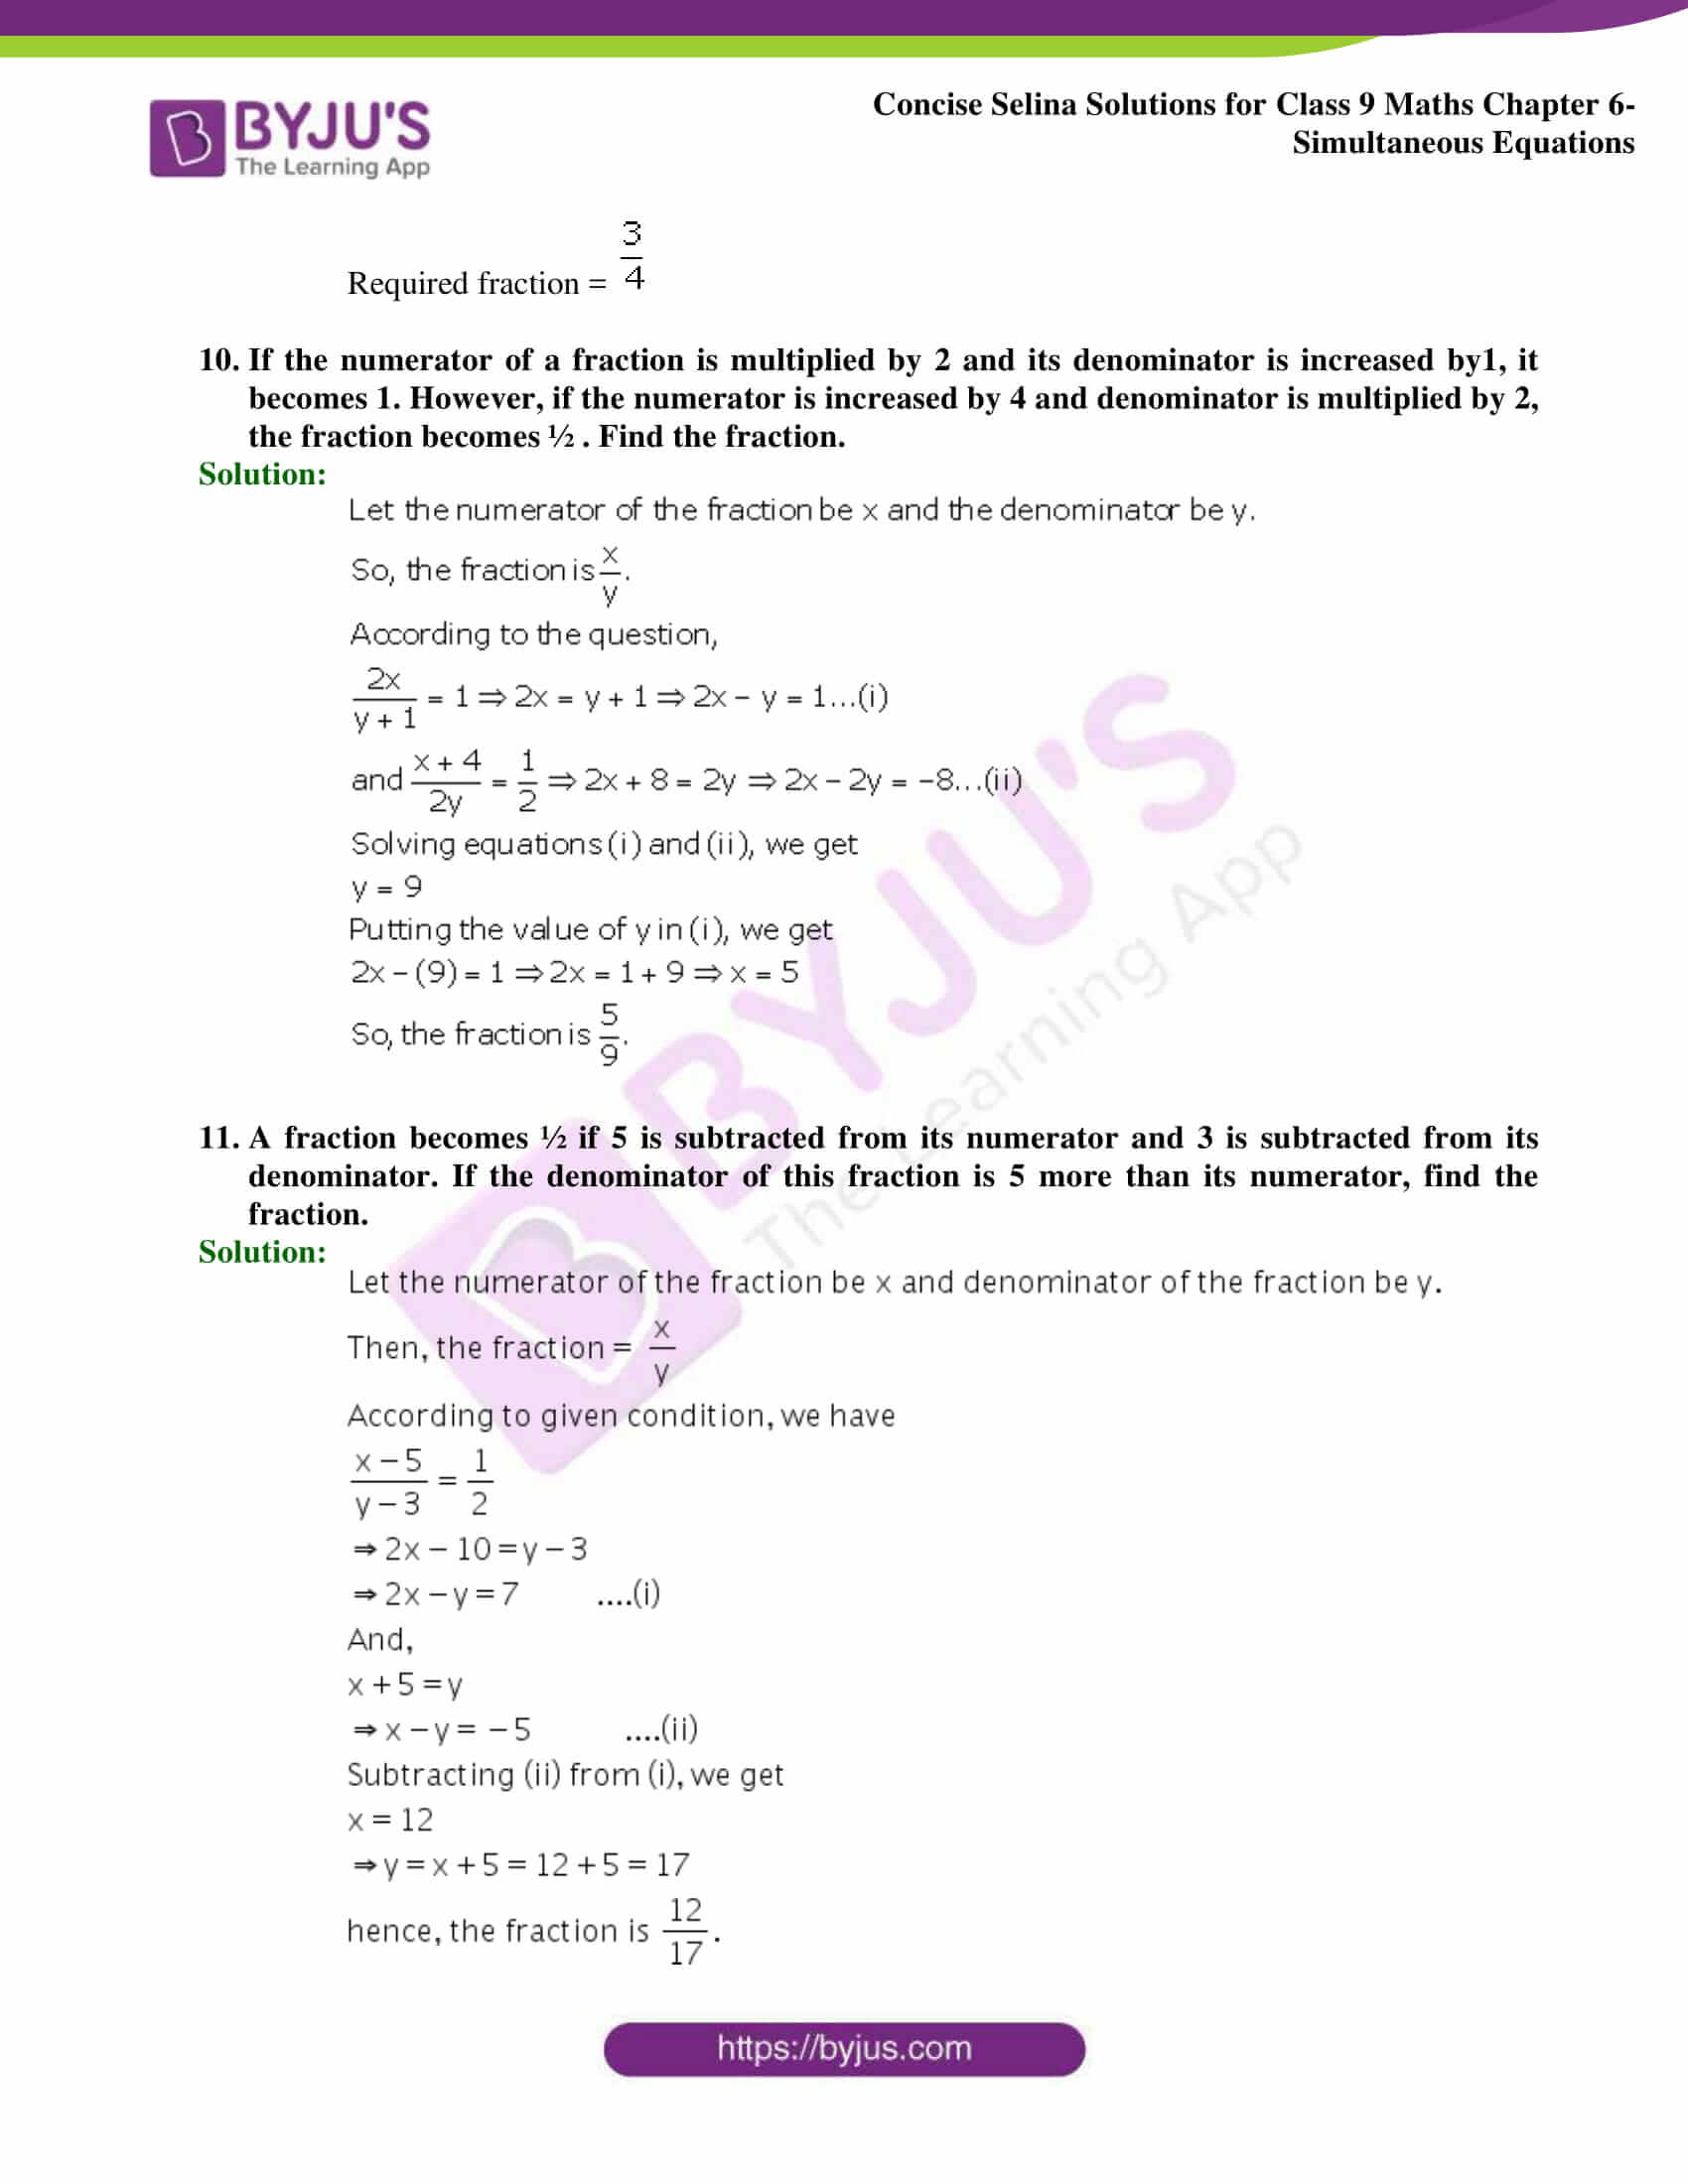 Selina Solutions Class 9 Maths Chapter 6 Simultaneous Equations part 42